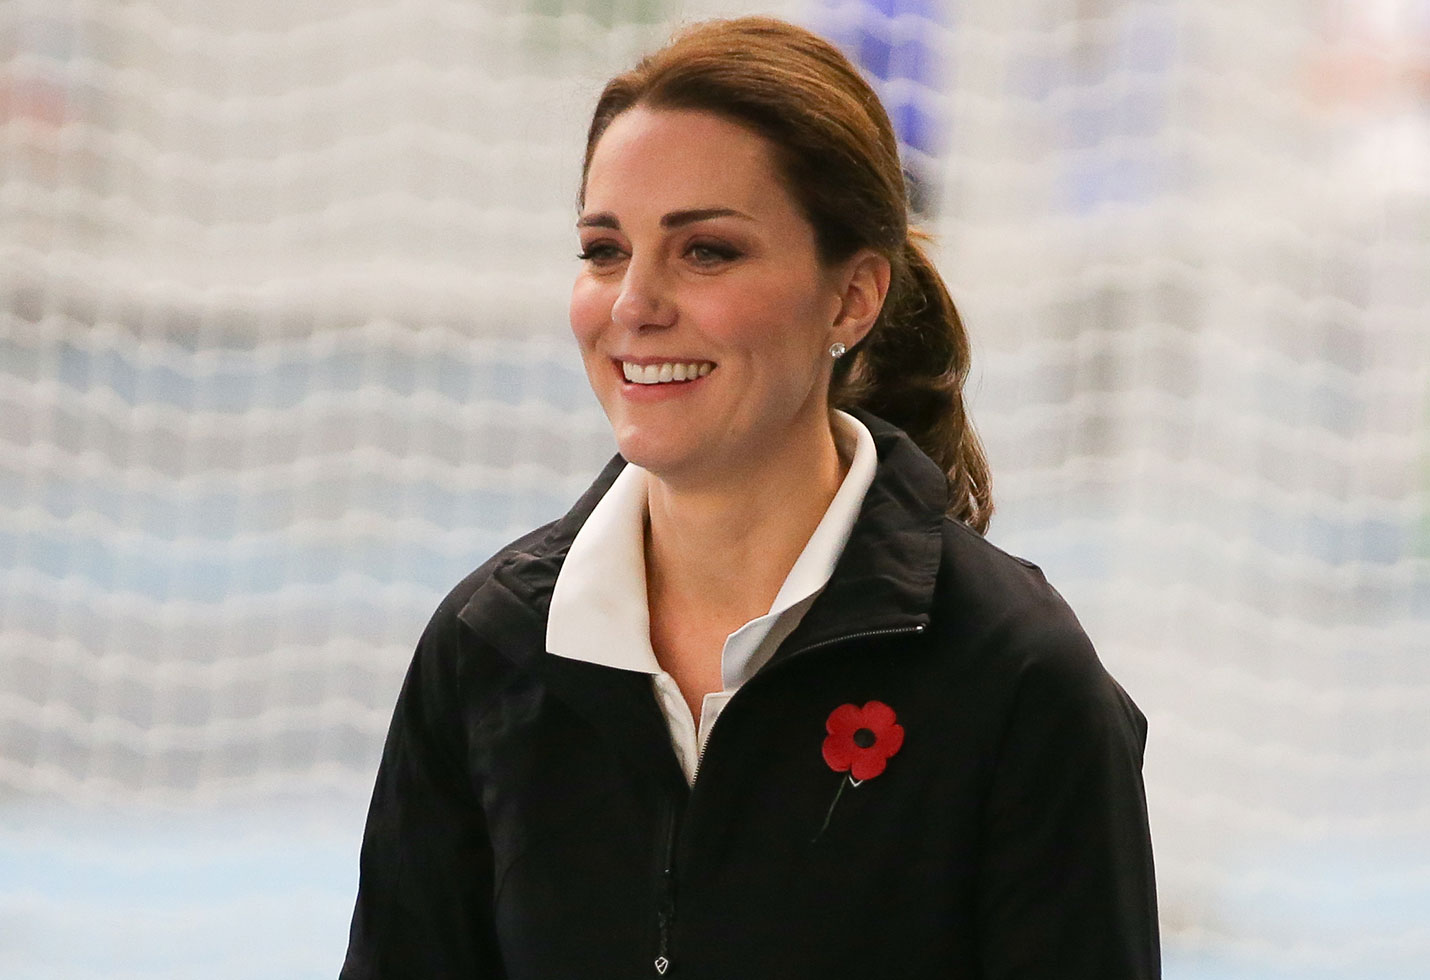 Kate middleton hits tennis court first solo appearance 1